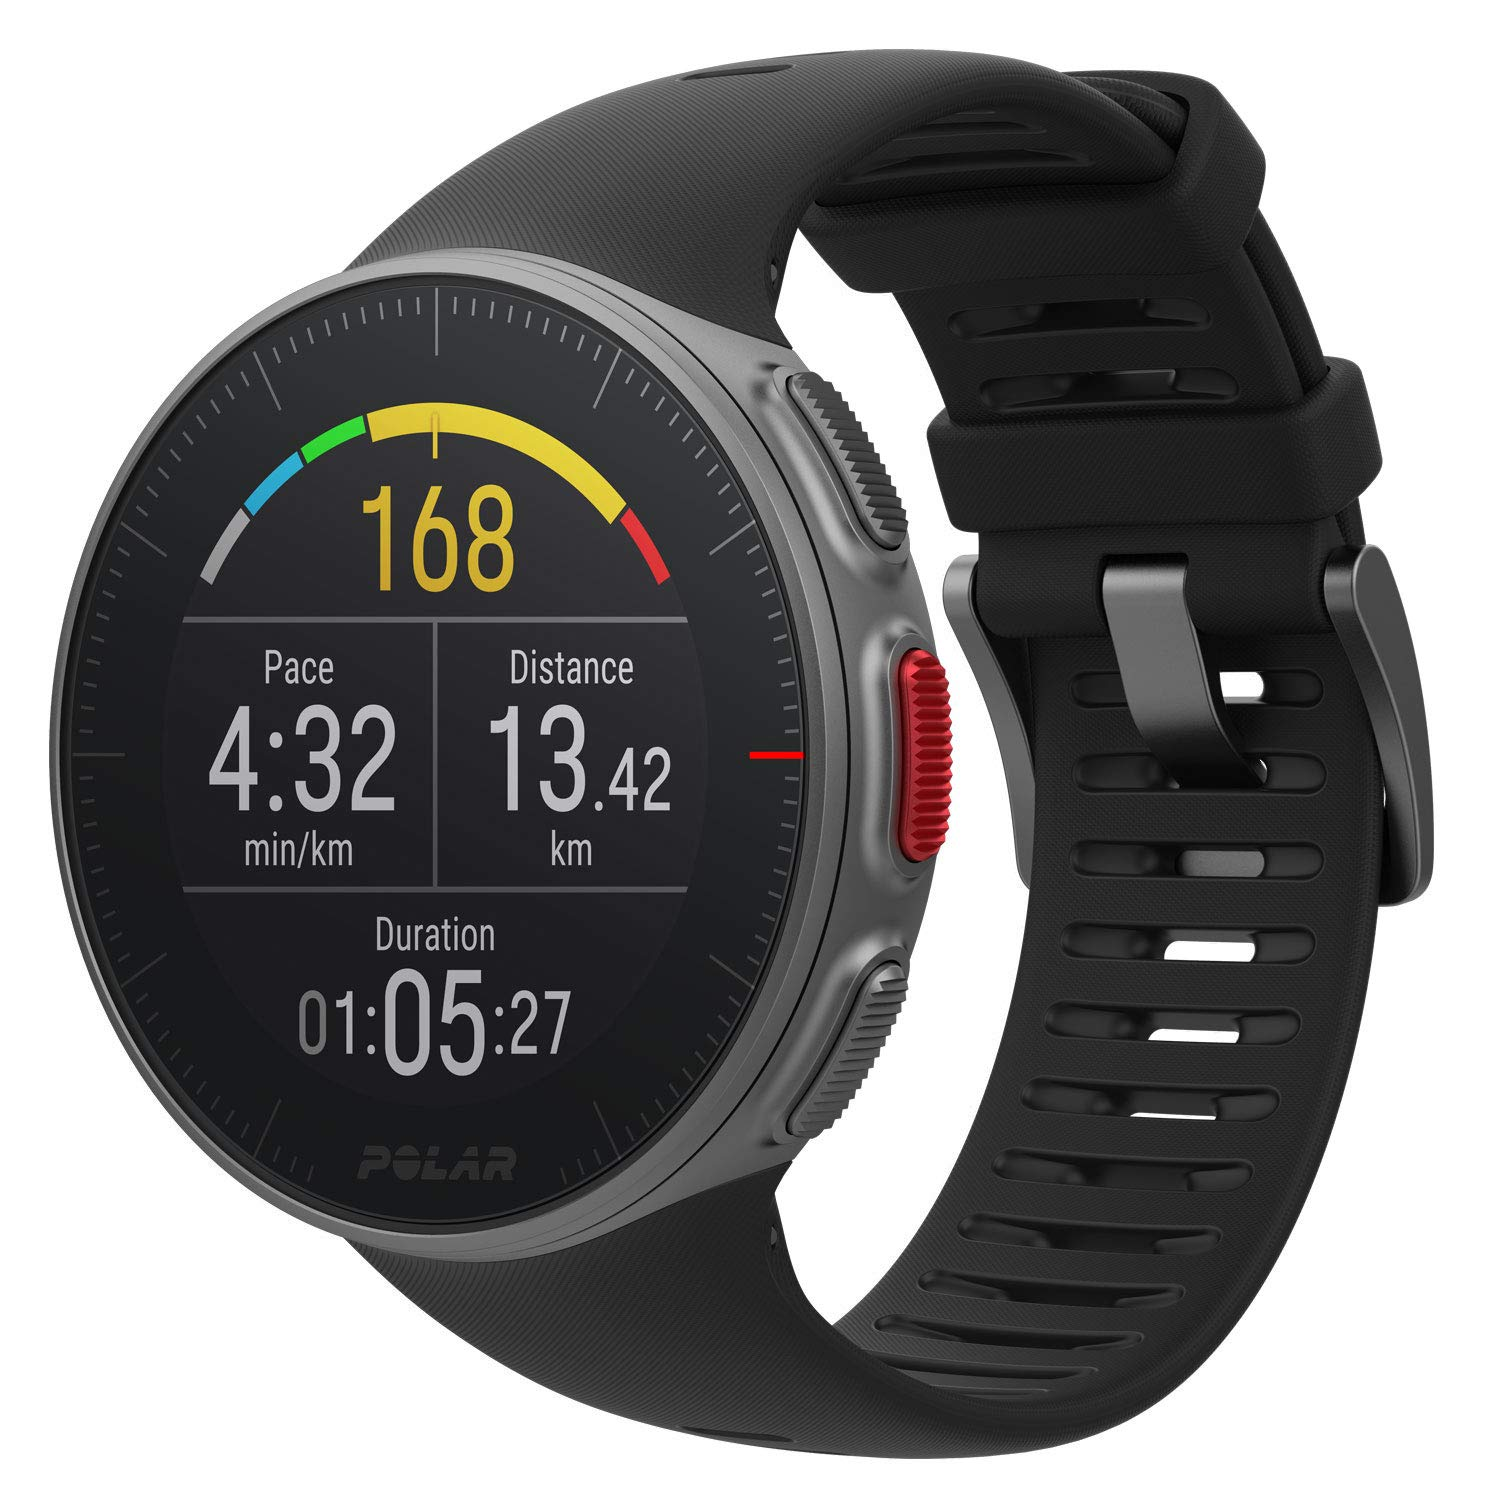 PlayBetter Polar Vantage V Pro (Black with H10 Heart Rate Sensor) Power Bundle Portable Charger & Screen Protectors | Multisport Watch | GPS & Barometer by PlayBetter (Image #3)